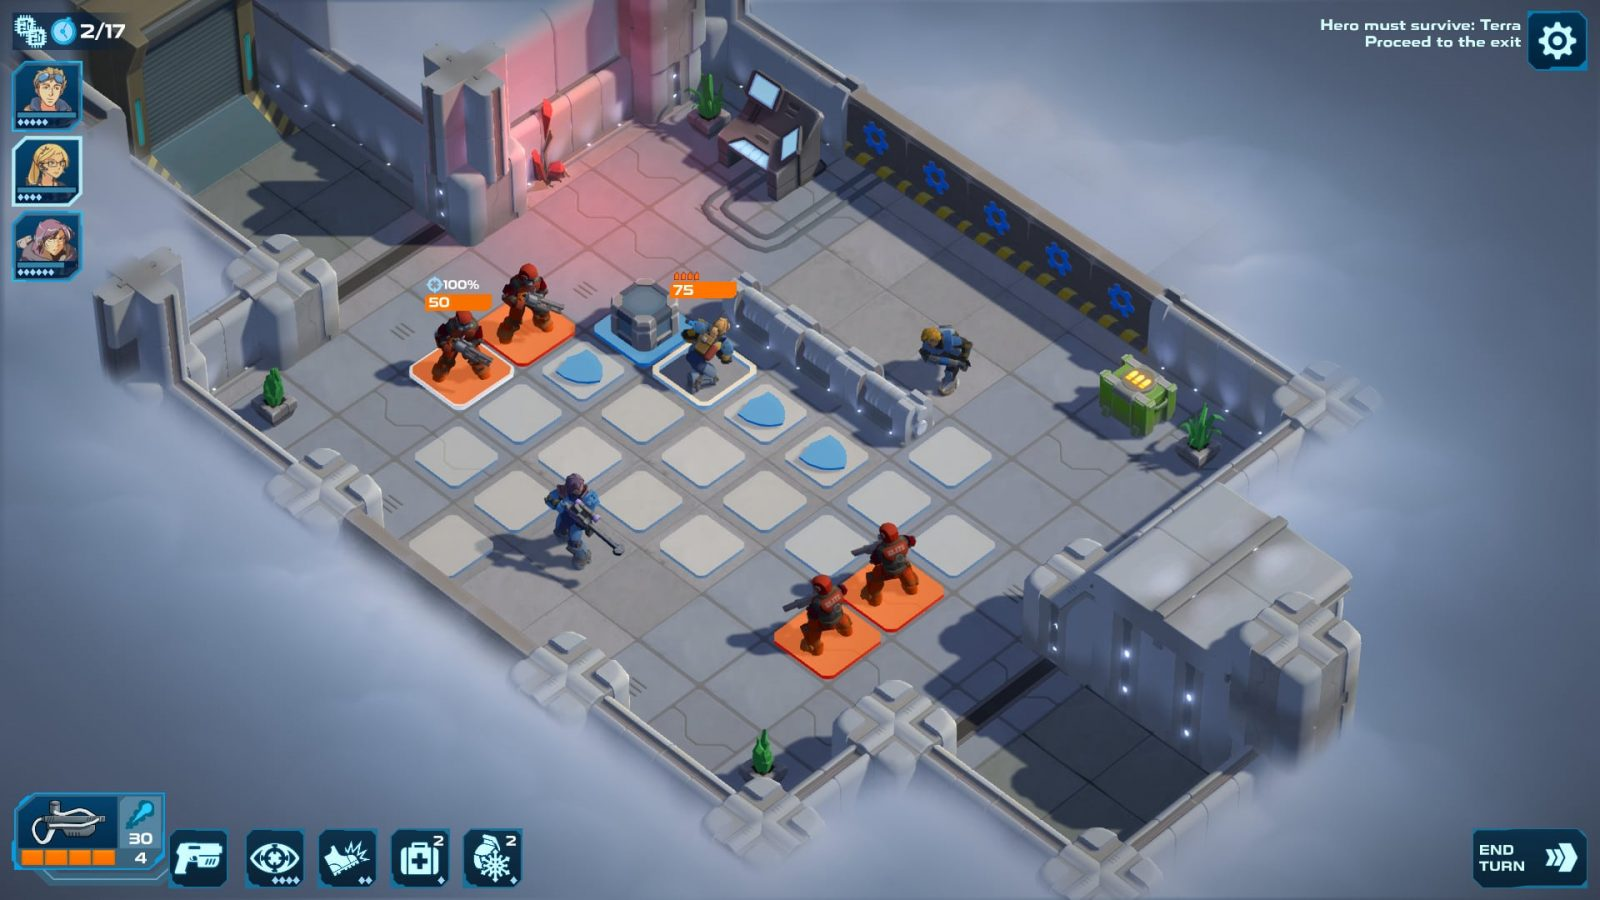 Spaceland Gets Multiplayer in New Update